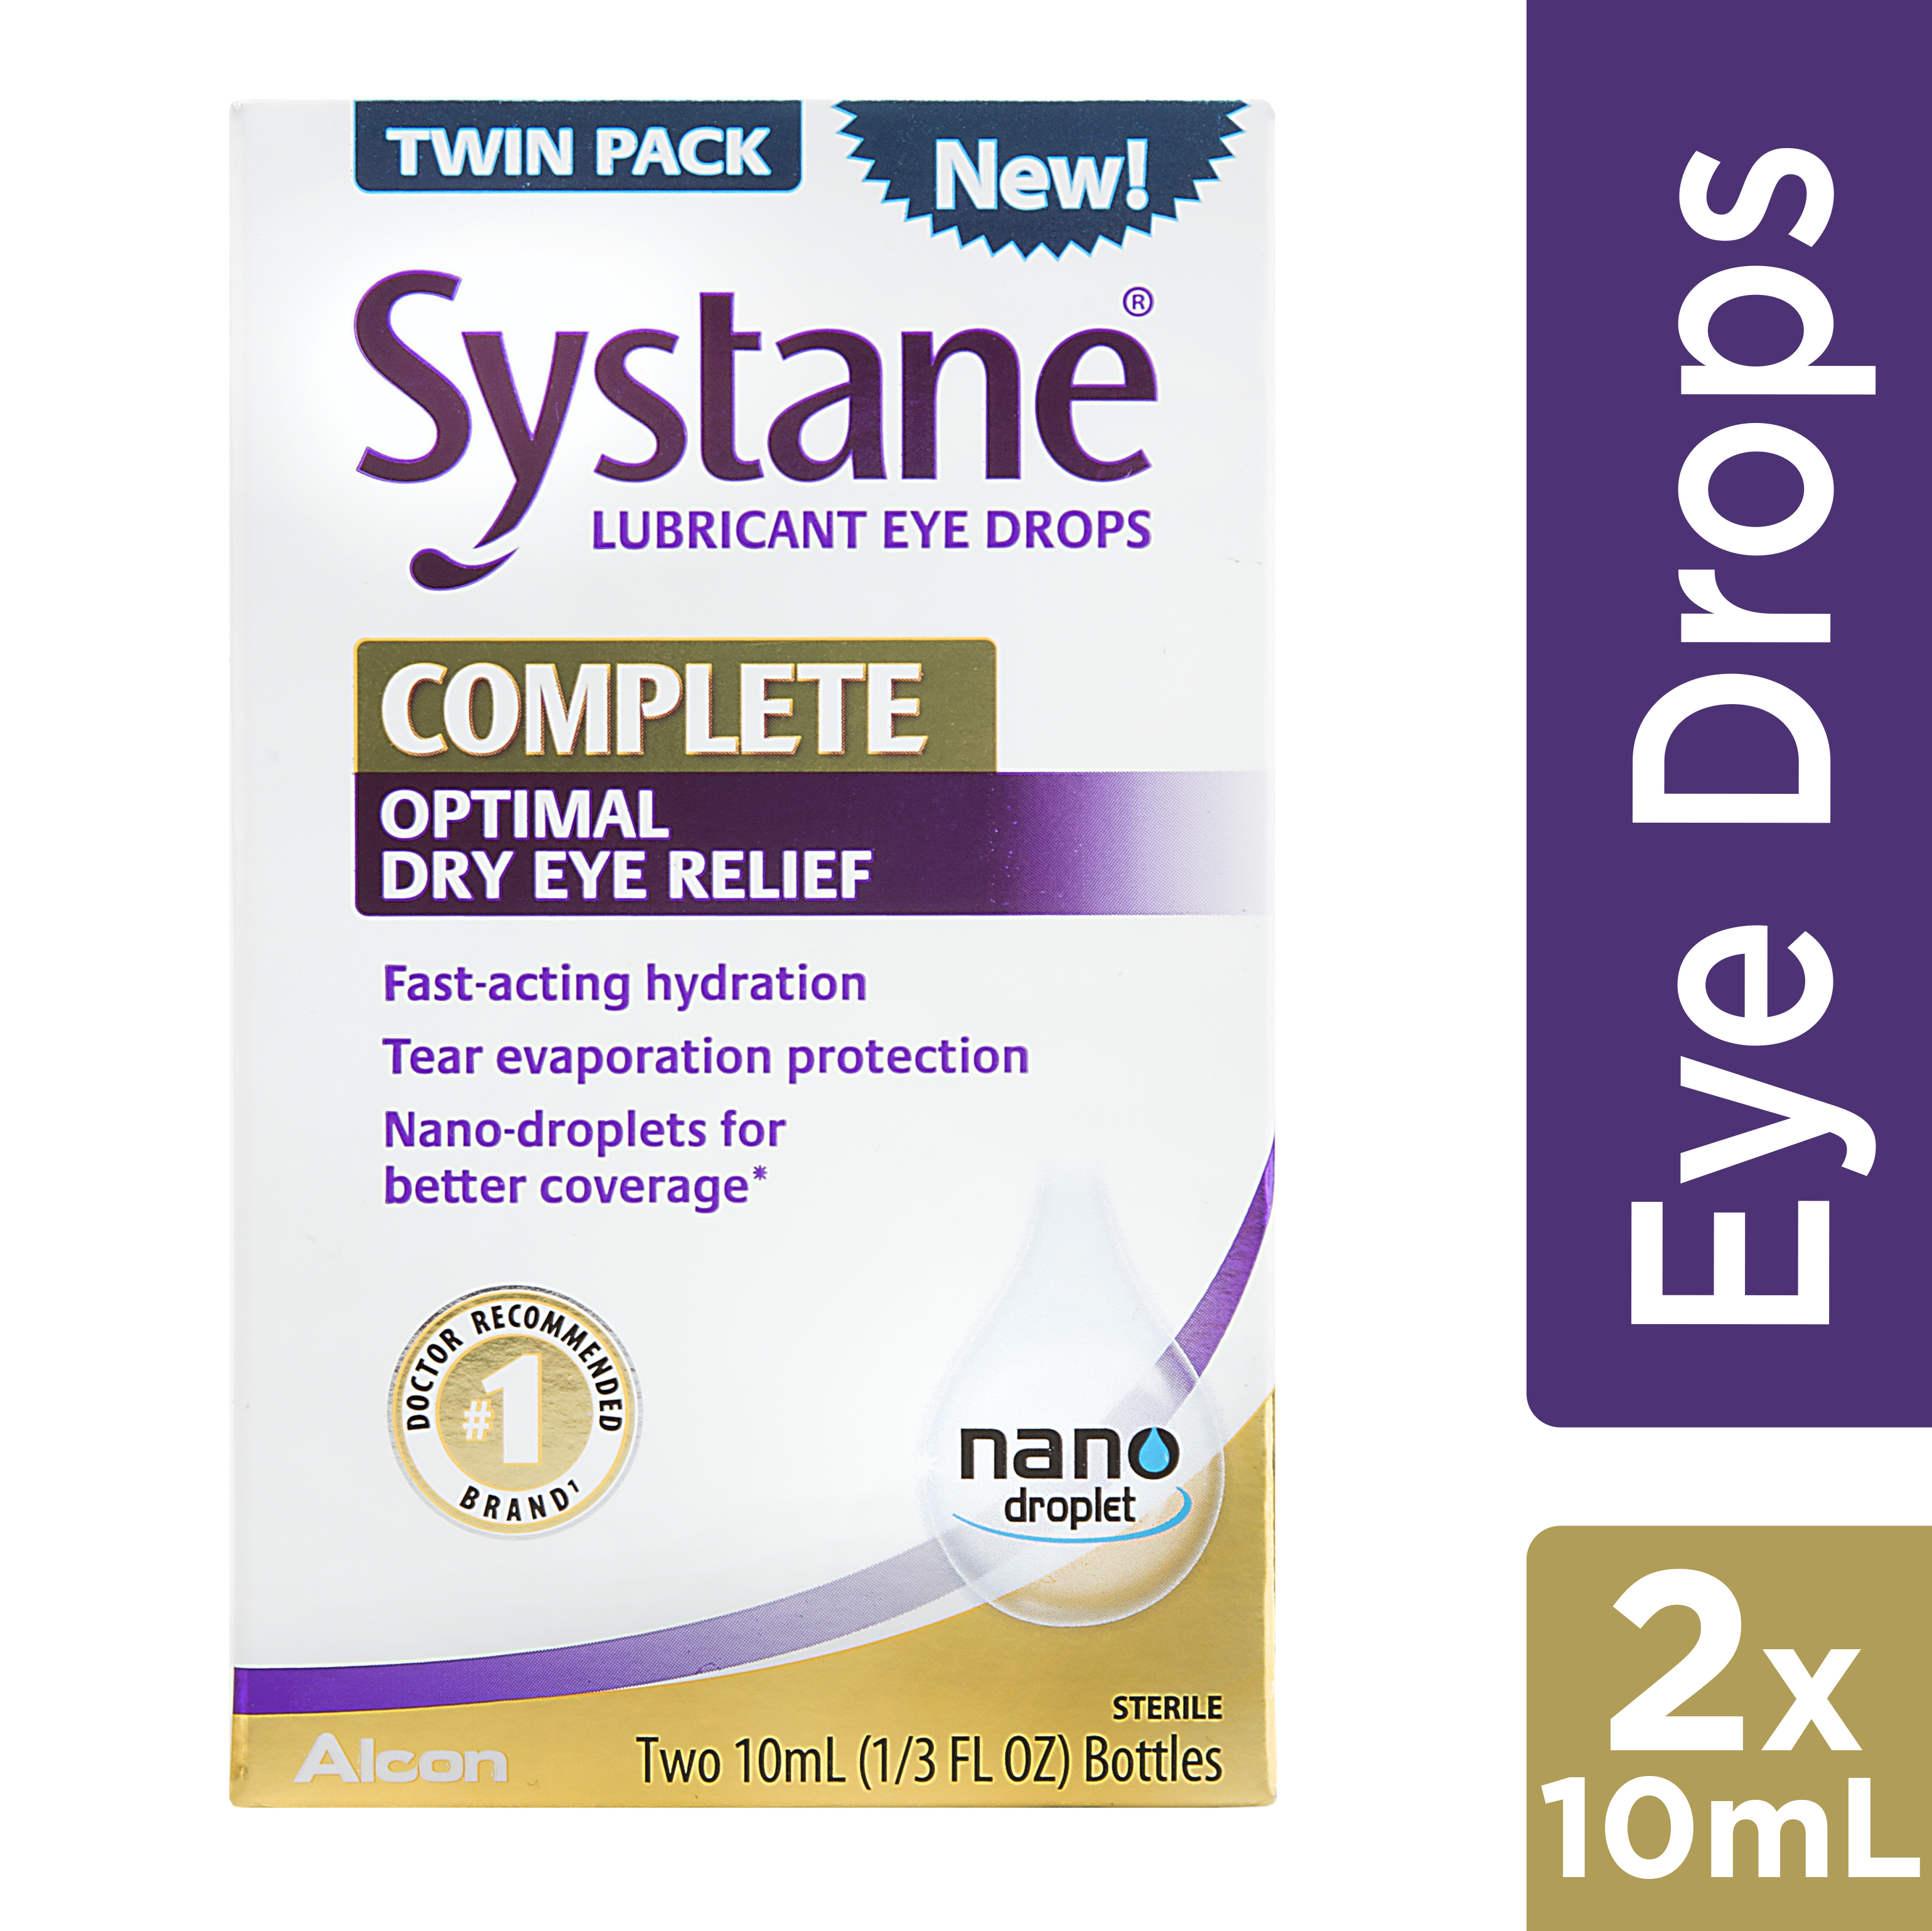 (2 Pack) Systane Complete Lubricant Eye Drops, 2 x 10mL TWIN